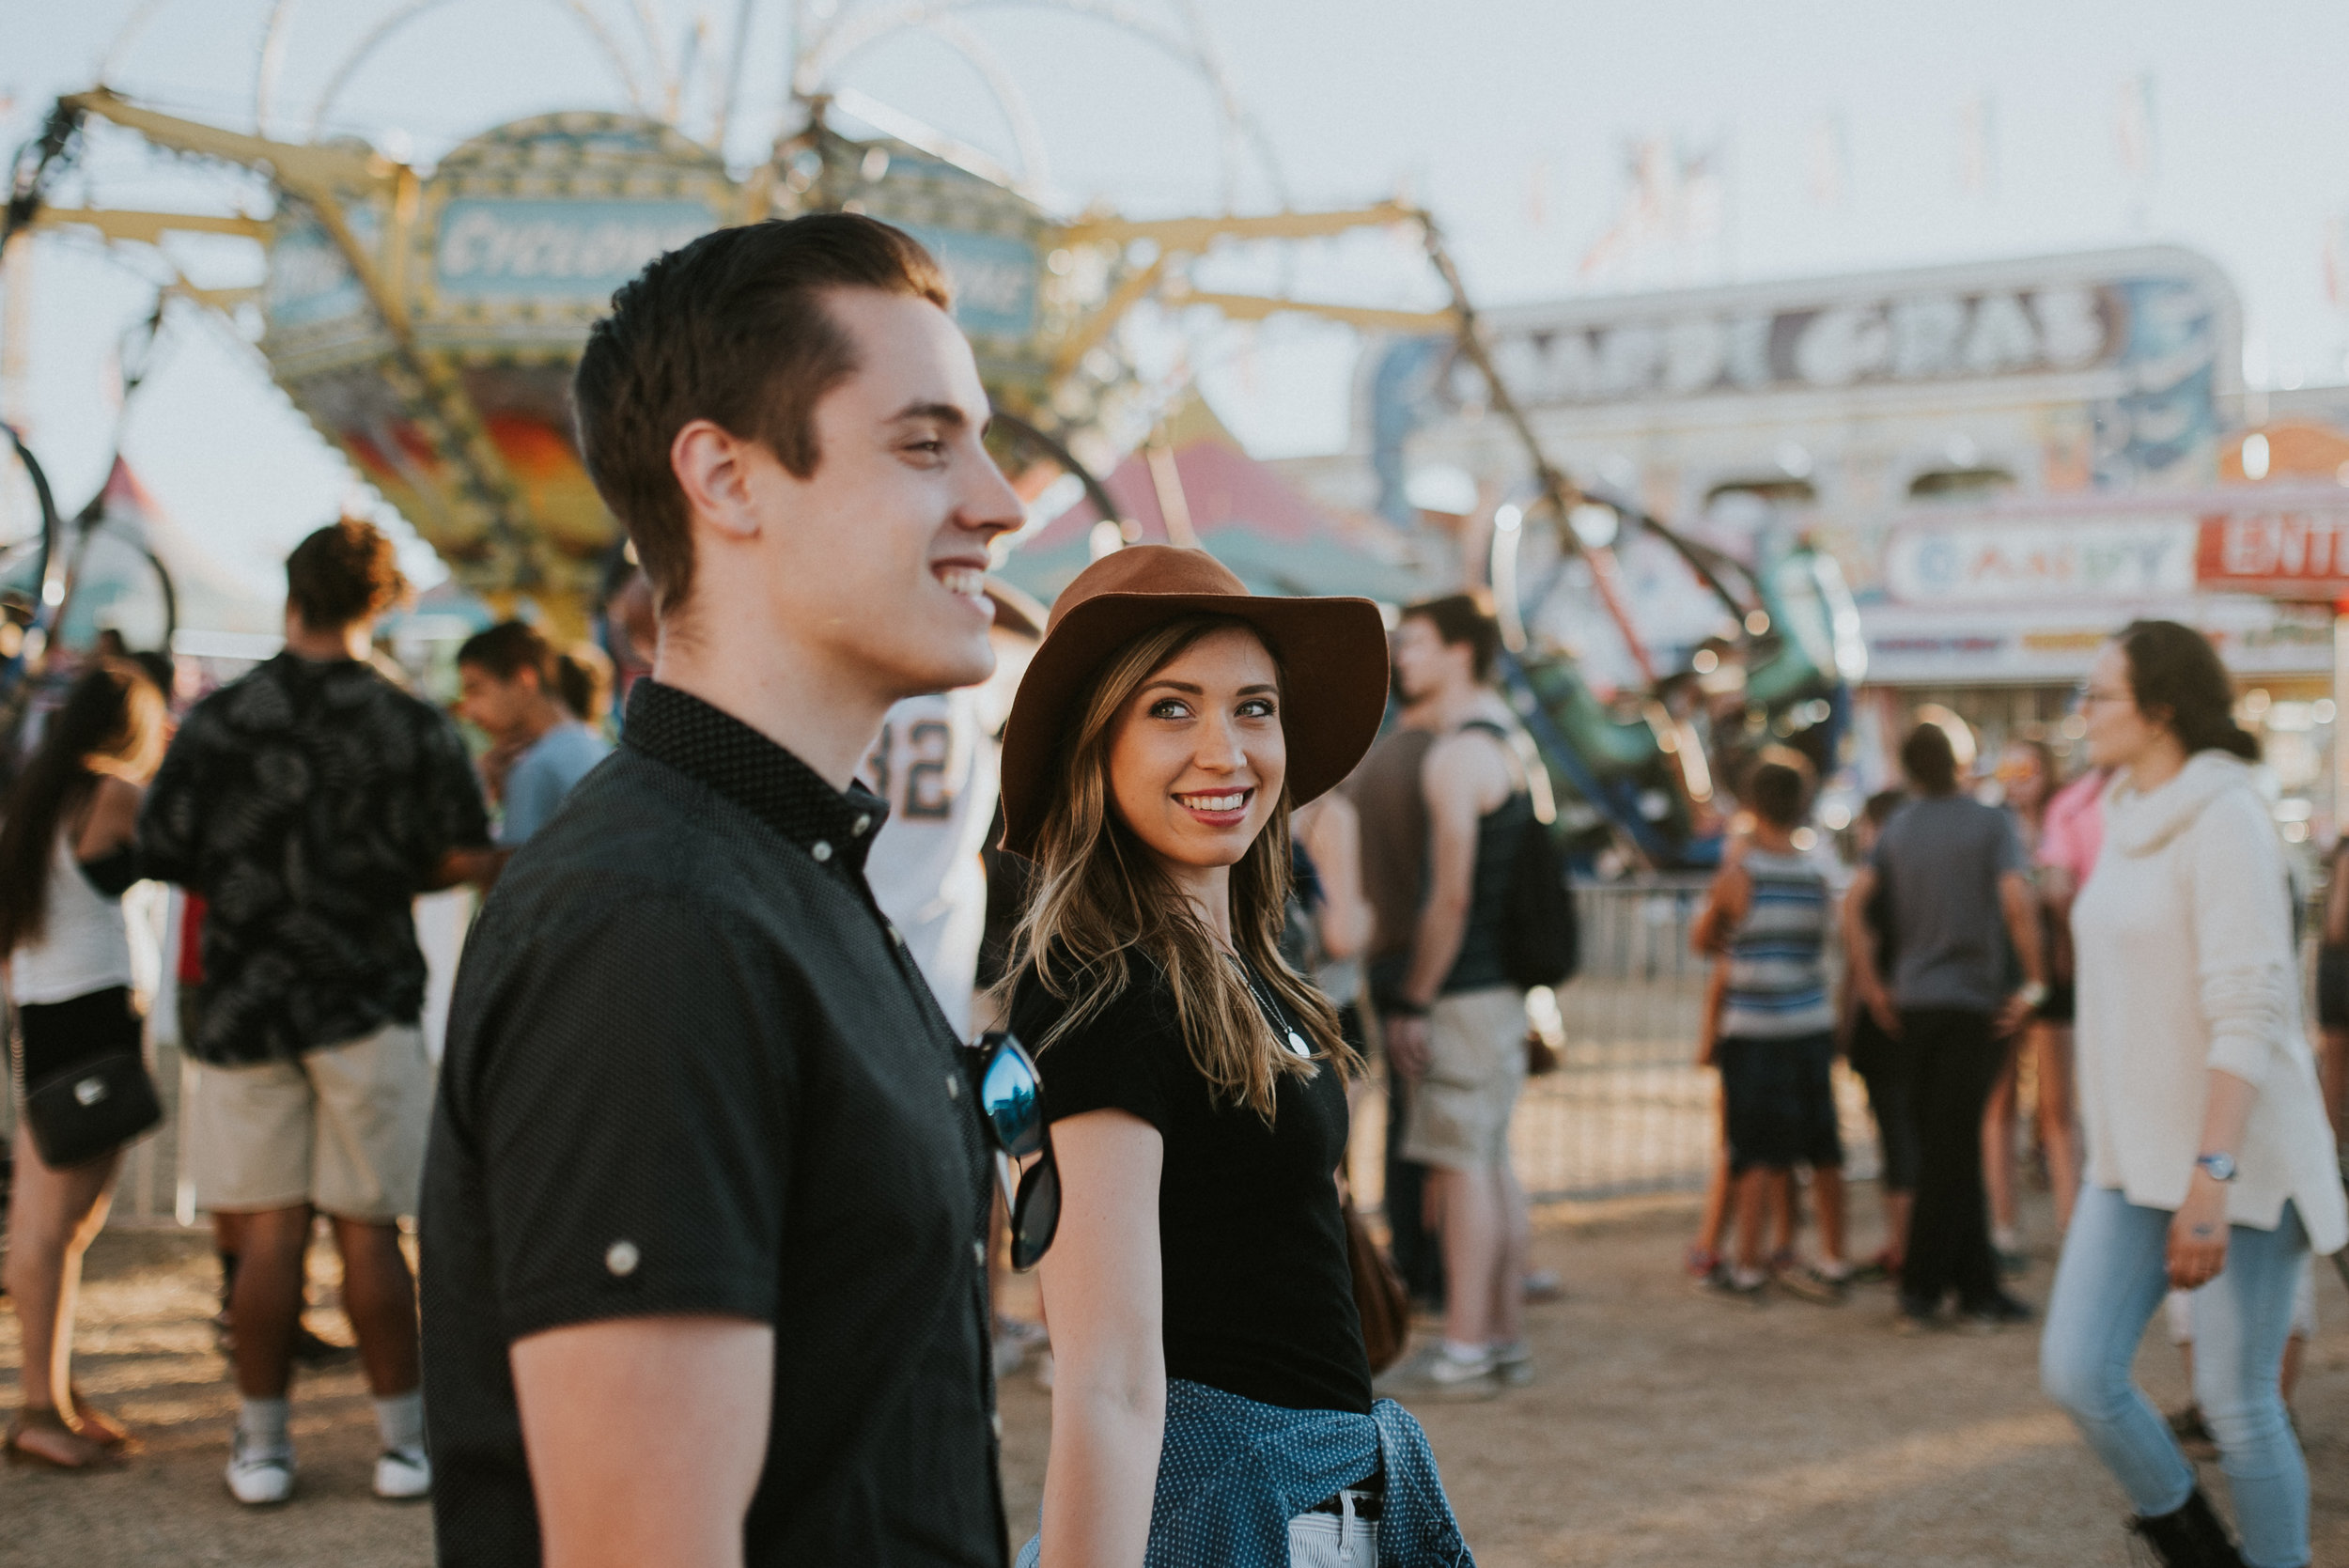 Alex + Tessa | Clark County Fair